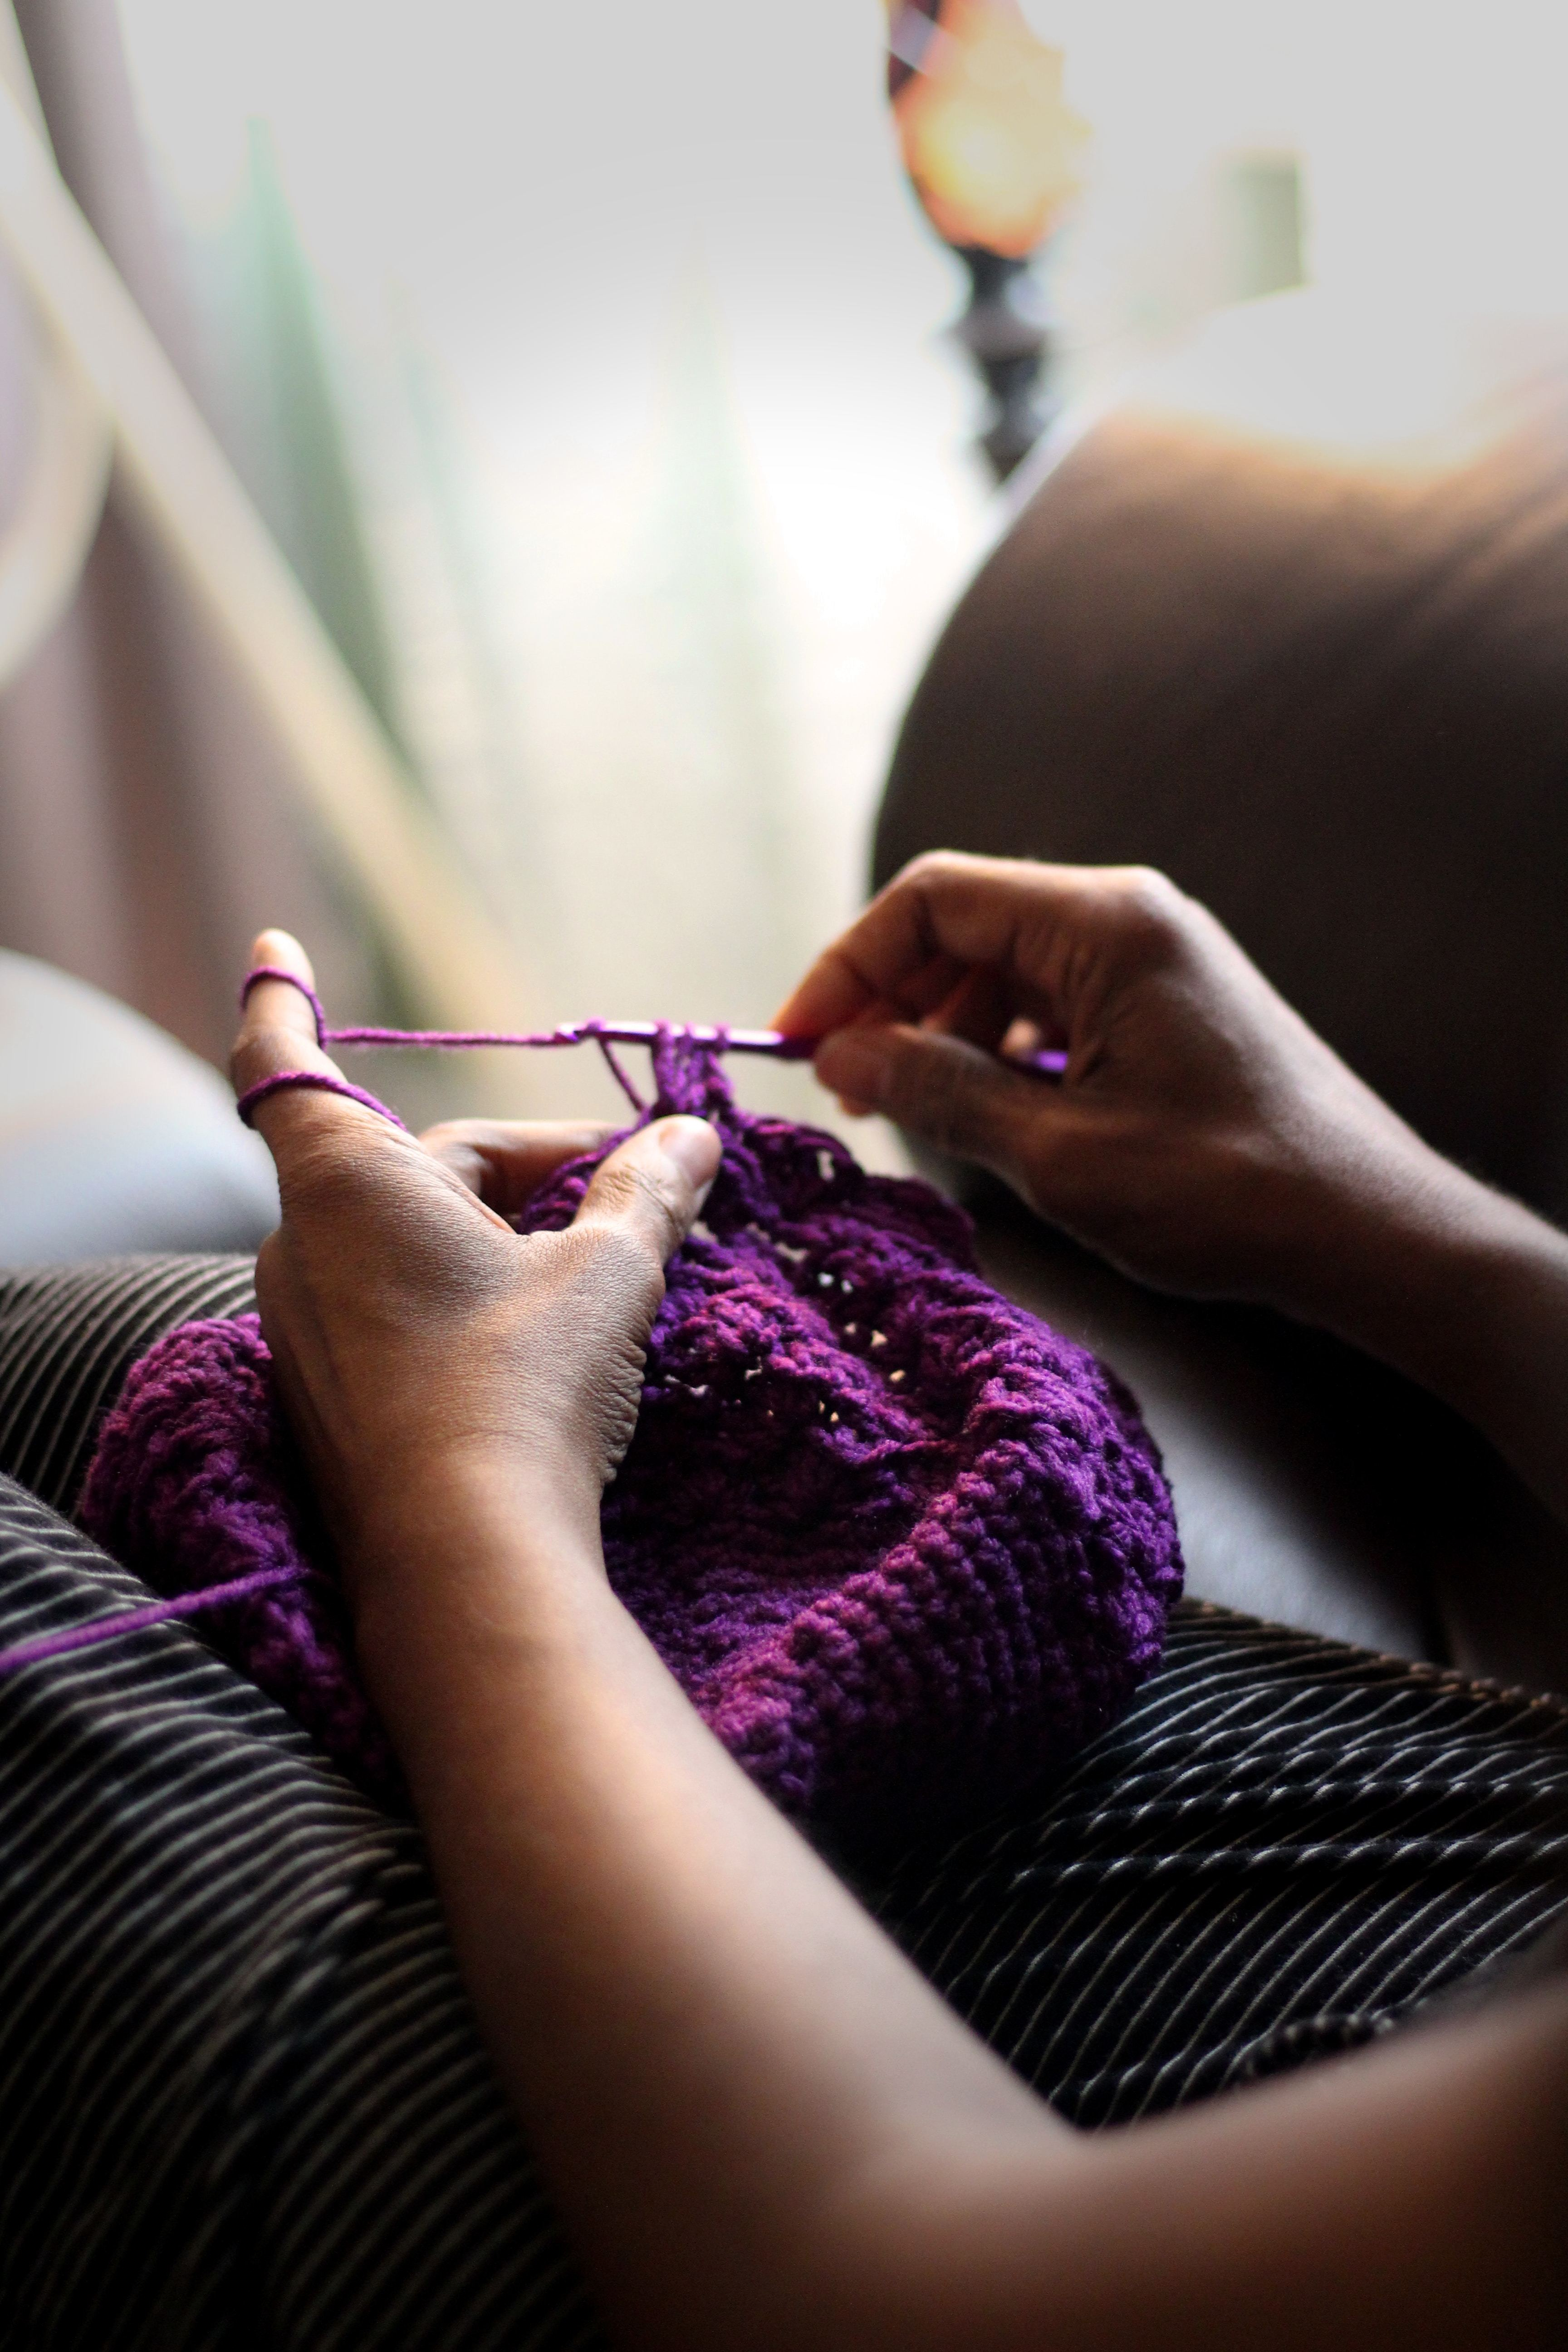 Lady crocheting a purple piece of fabbric